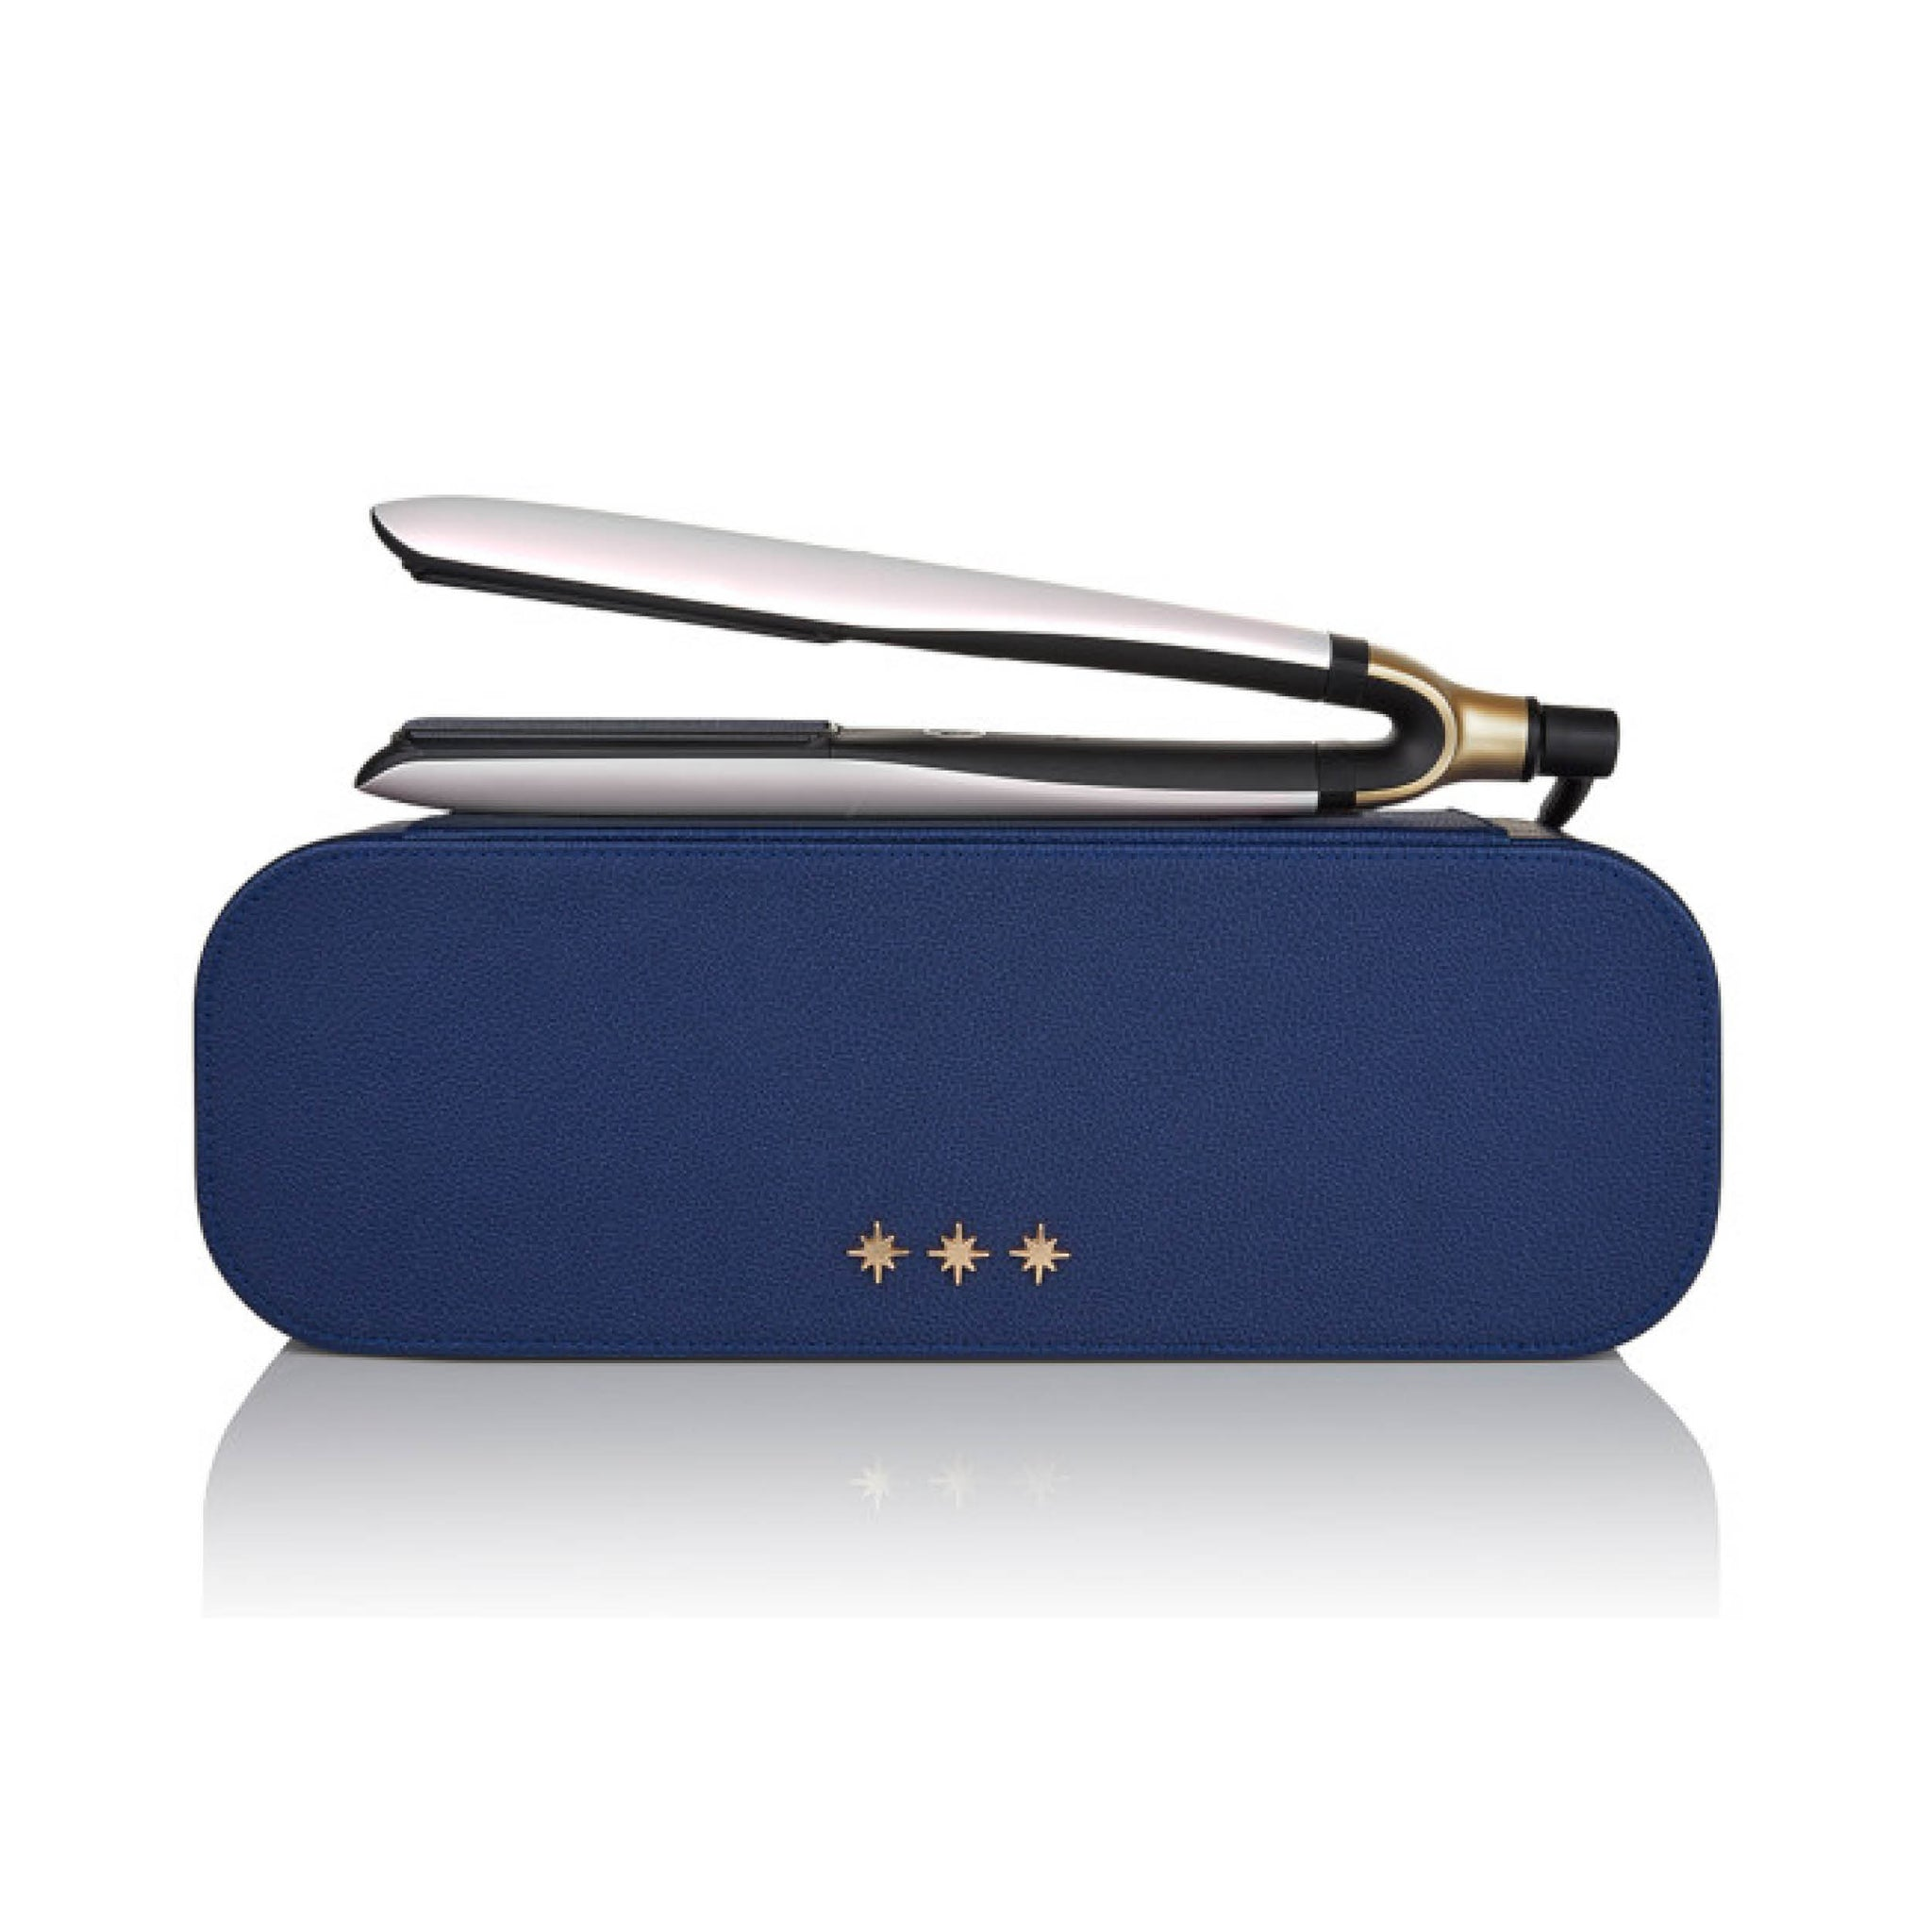 GHD Platinum+ Professional Smart Styler with Exclusive Vanity Case